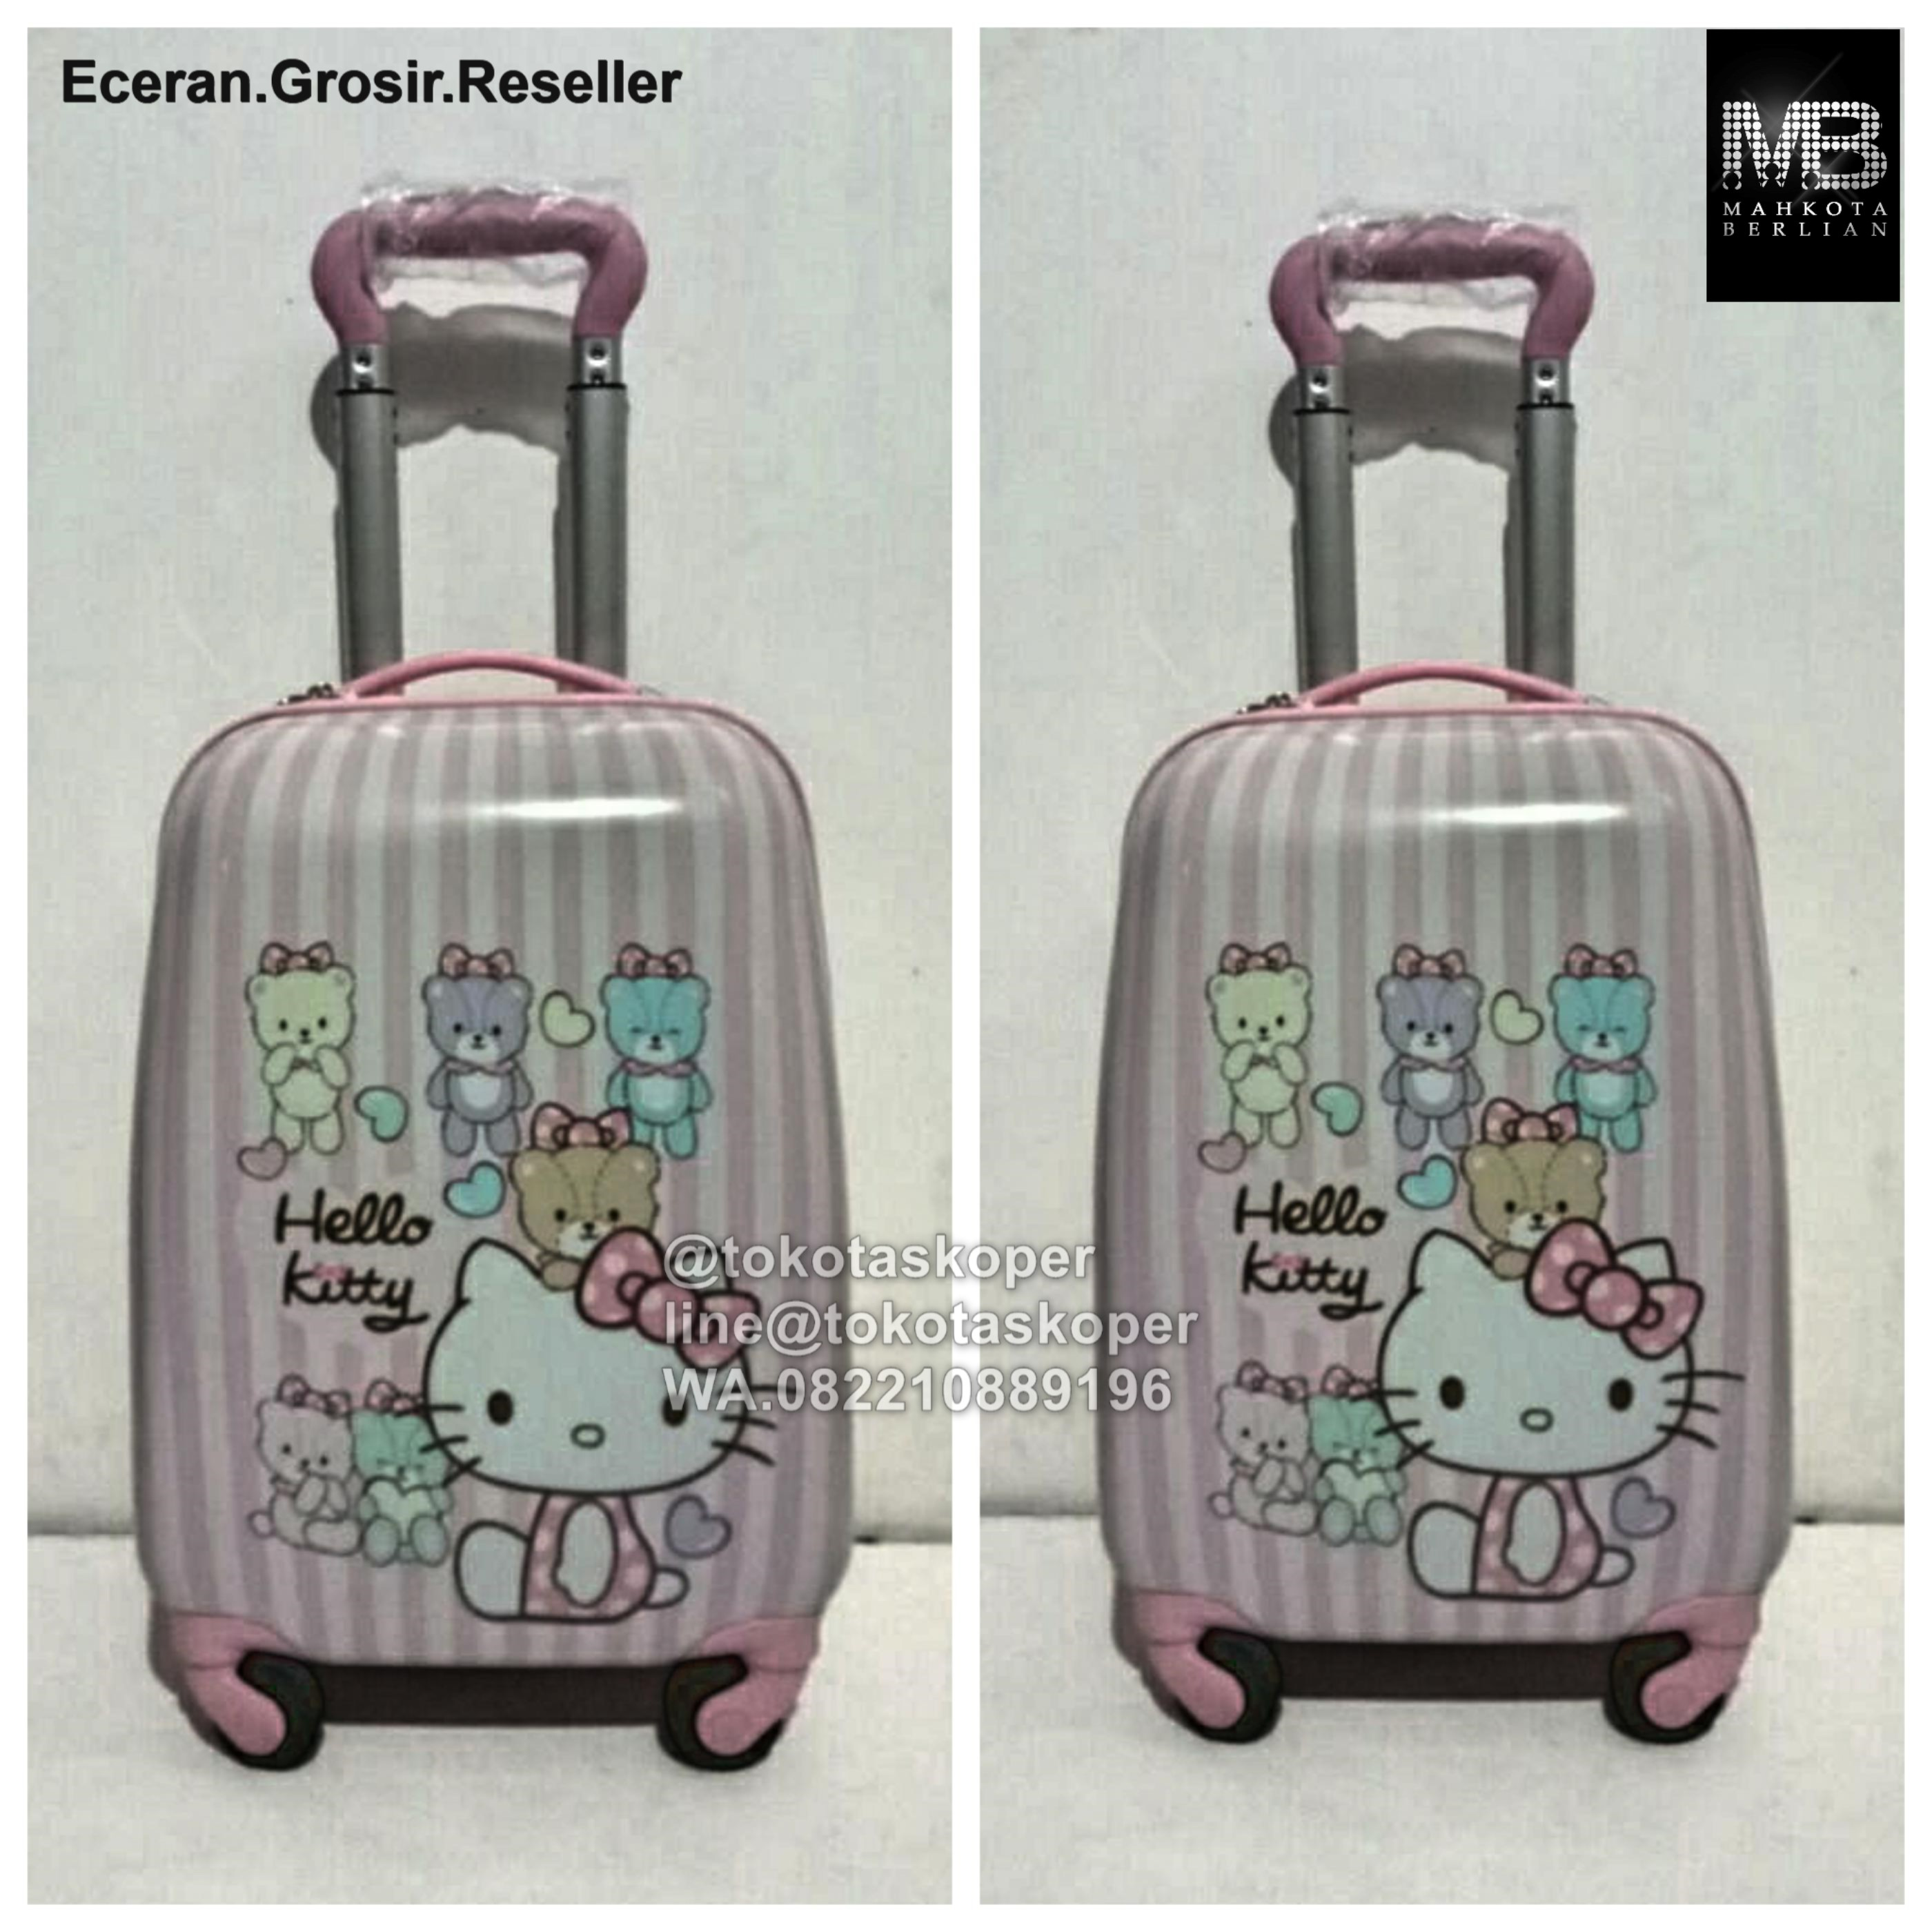 Real Polo Tas Koper Softcase Set Expandable 4 Roda 581 20 24 Coklat Passport Inci 10136882 Home Merah